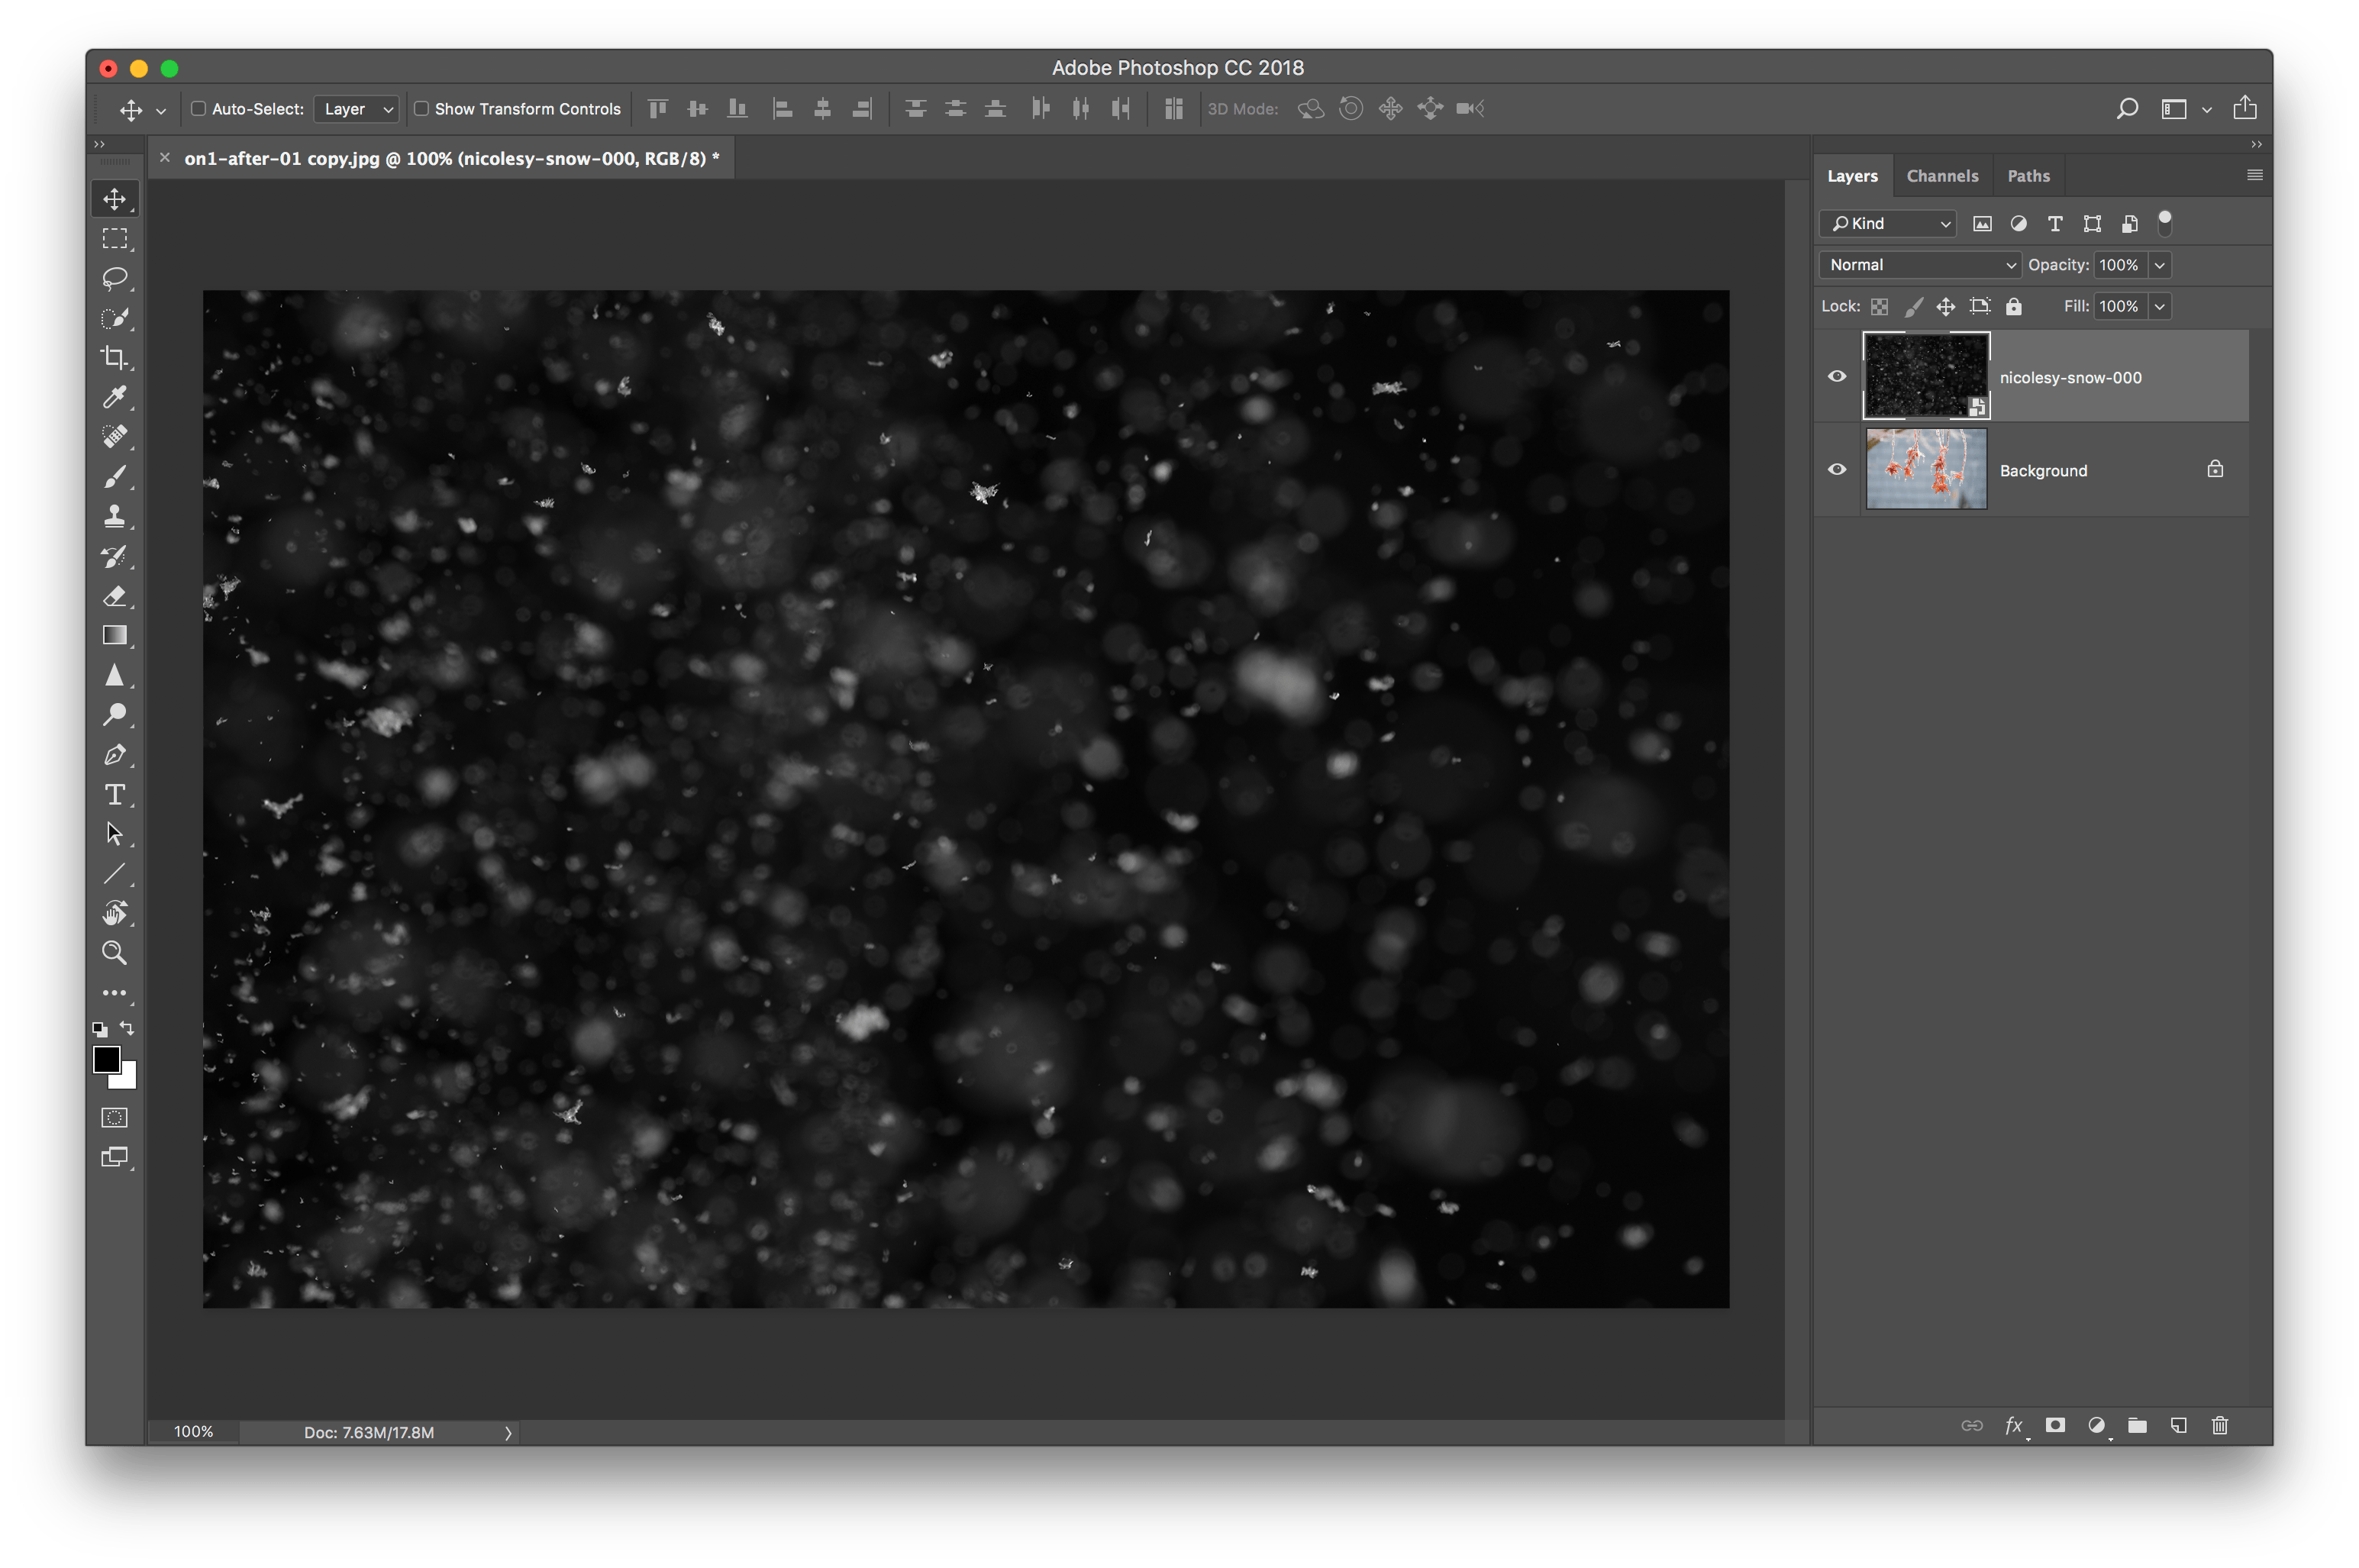 Free snowfall overlay png. Download a snow for